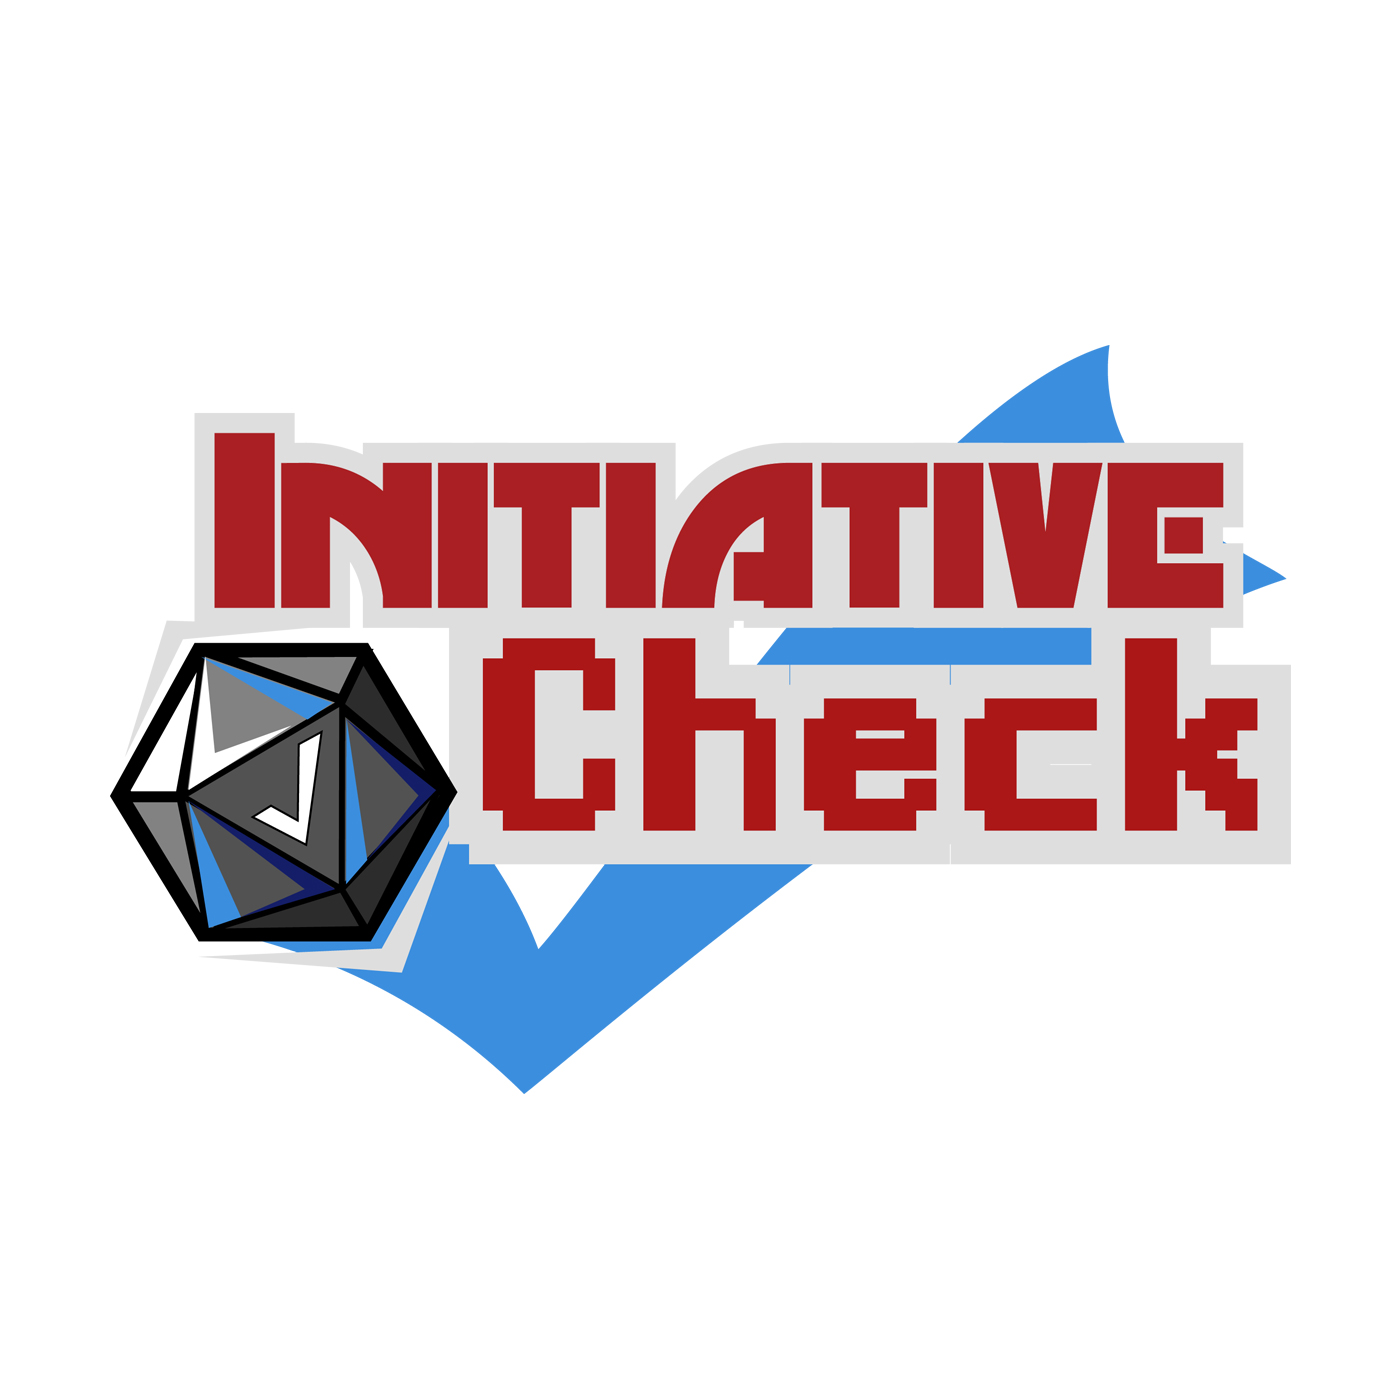 The Initiative Check!